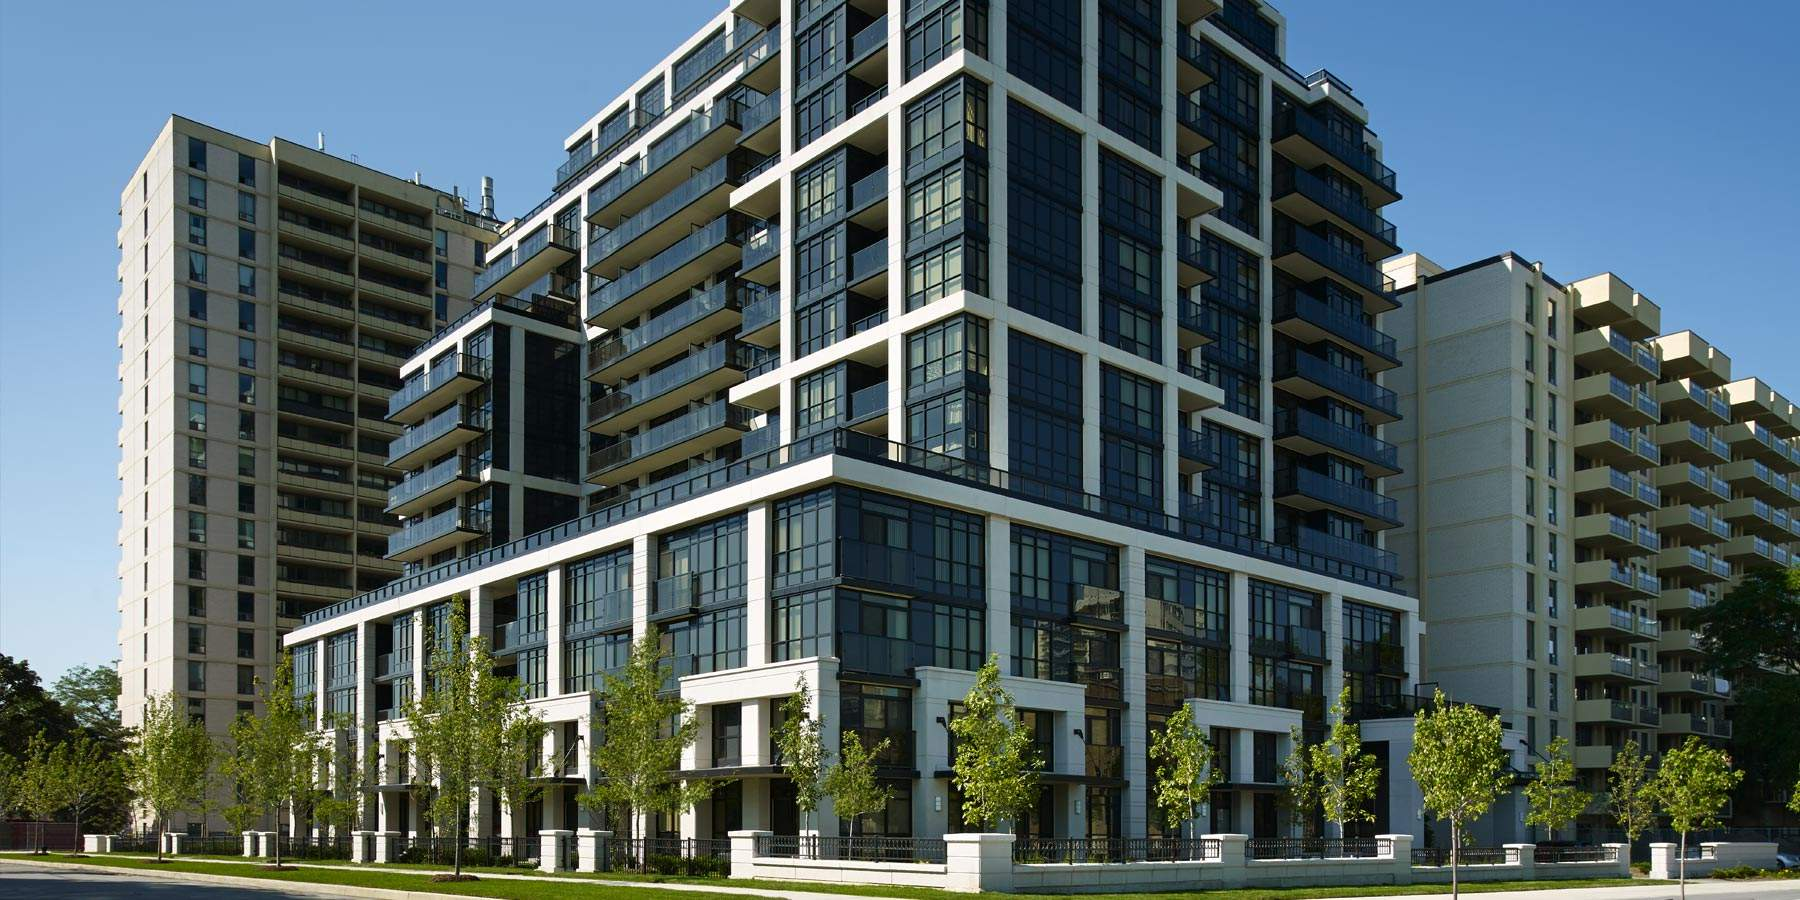 KG Group Roehampton Brand New Luxury Condo Rental Suites Yonge and Eglinton